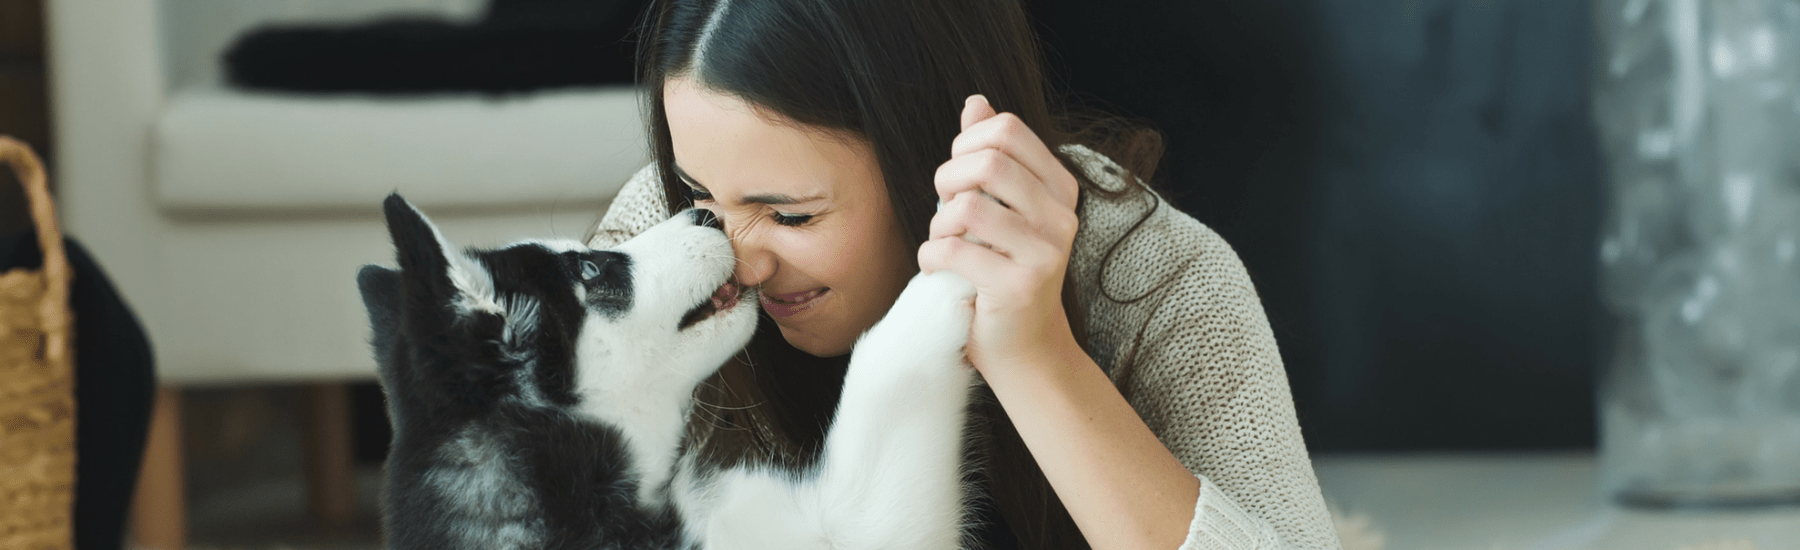 A dog licking the nose of a smiling woman